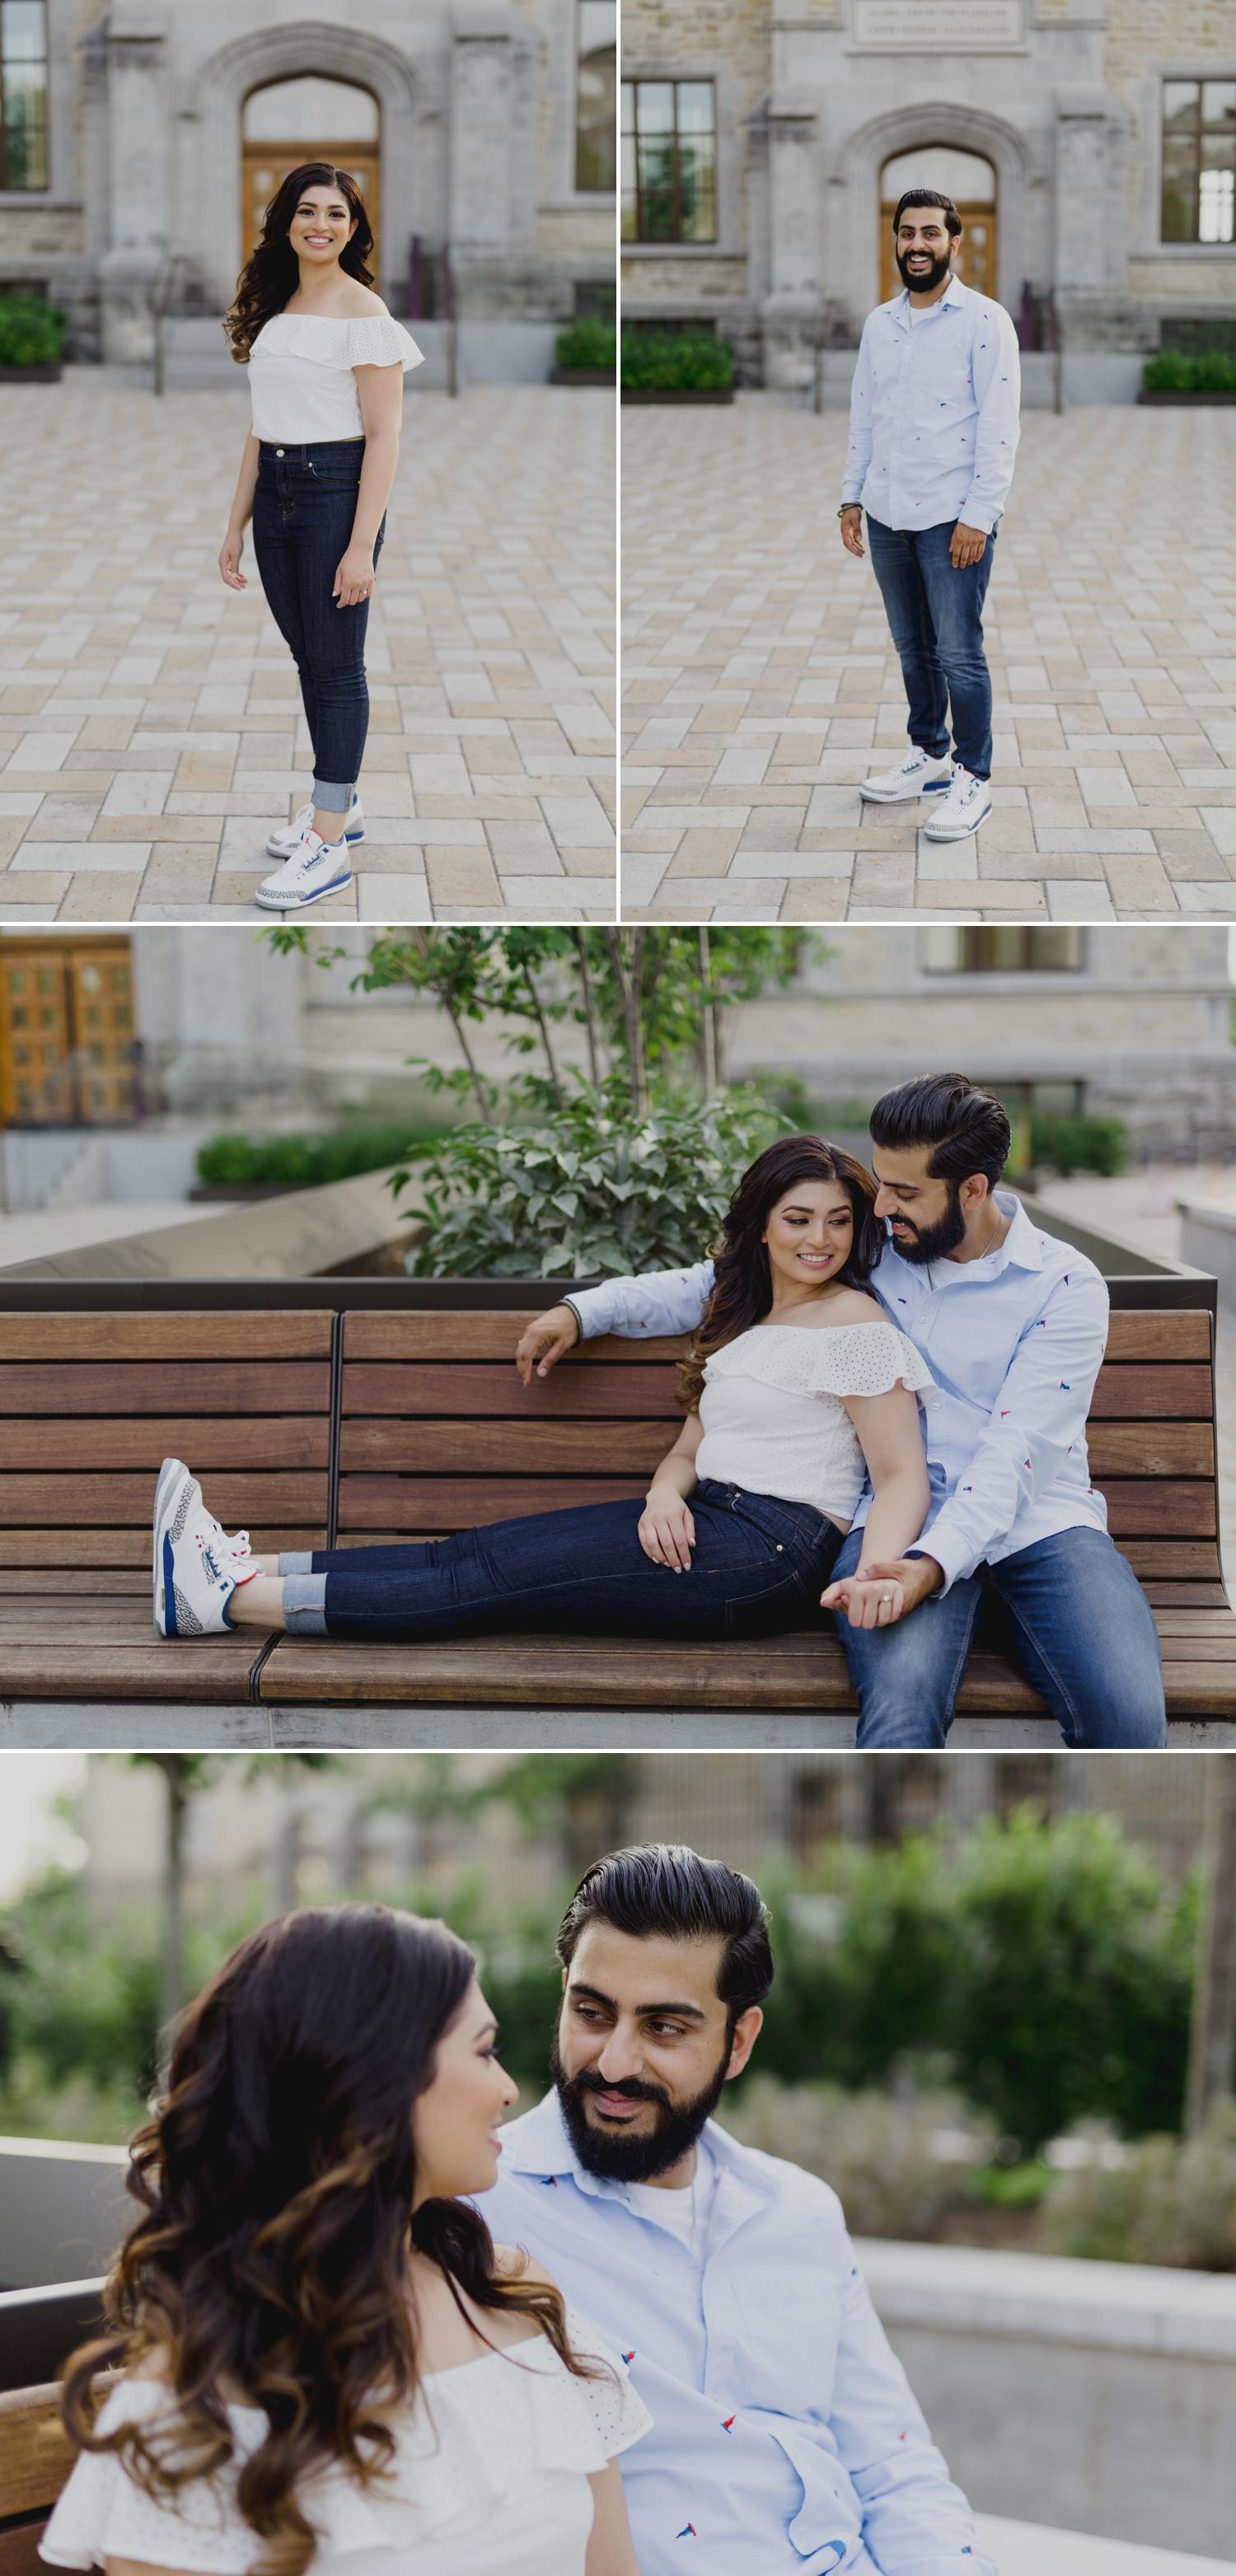 Portraits of an indian man and woman at their engagement shoot in ottawa